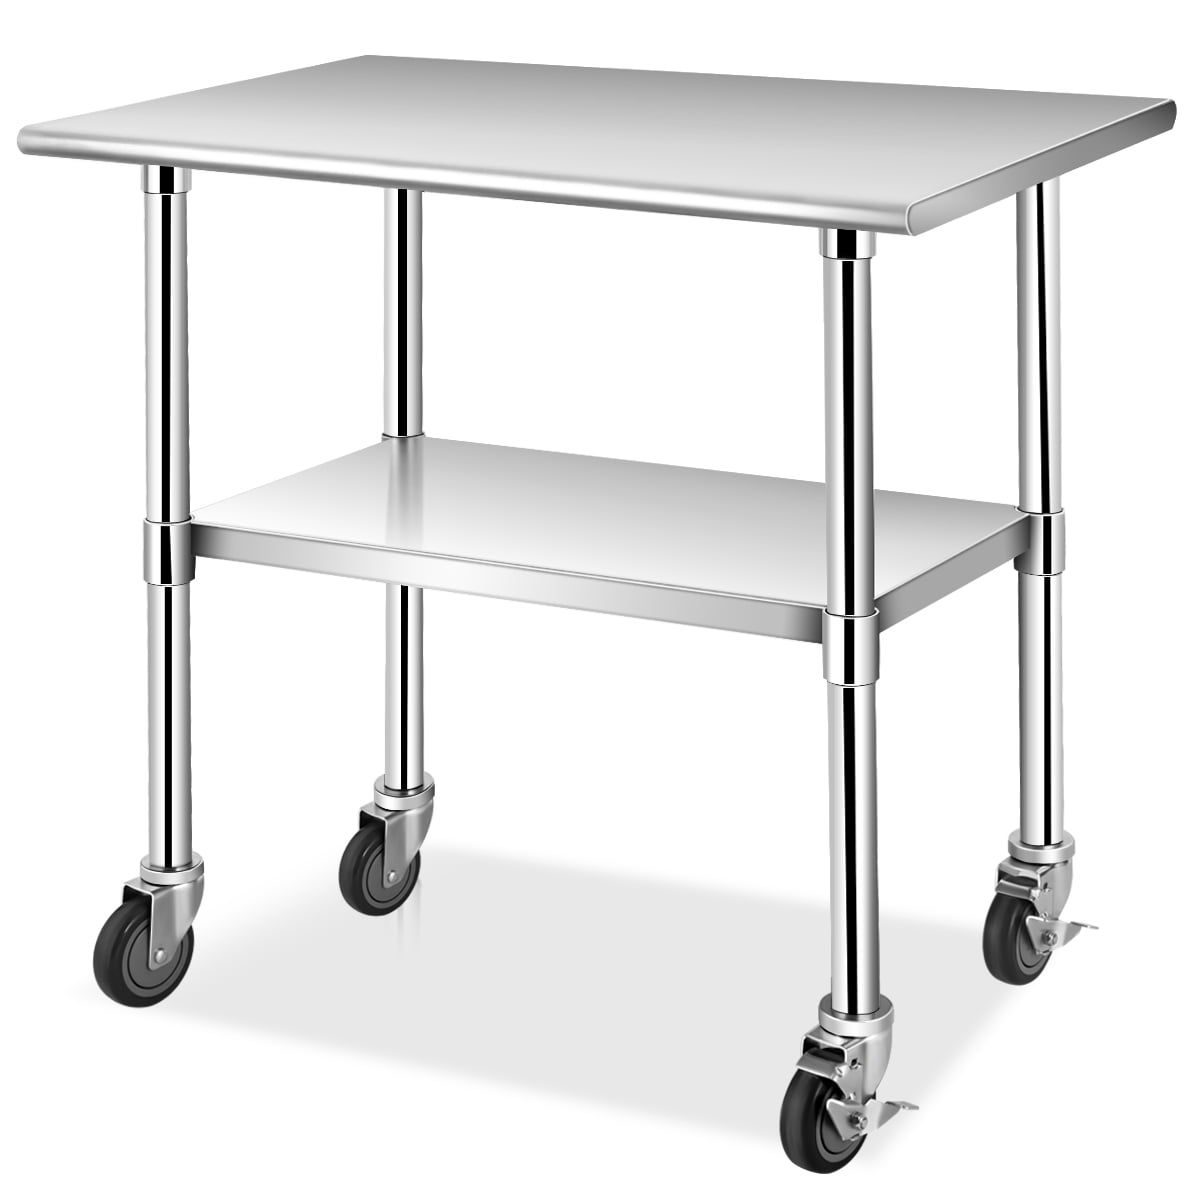 Costway 36 X 24 48 X 24 Nsf Stainless Steel Commercial Kitchen Prep Work Table W 4 Casters Walmart Com Walmart Com